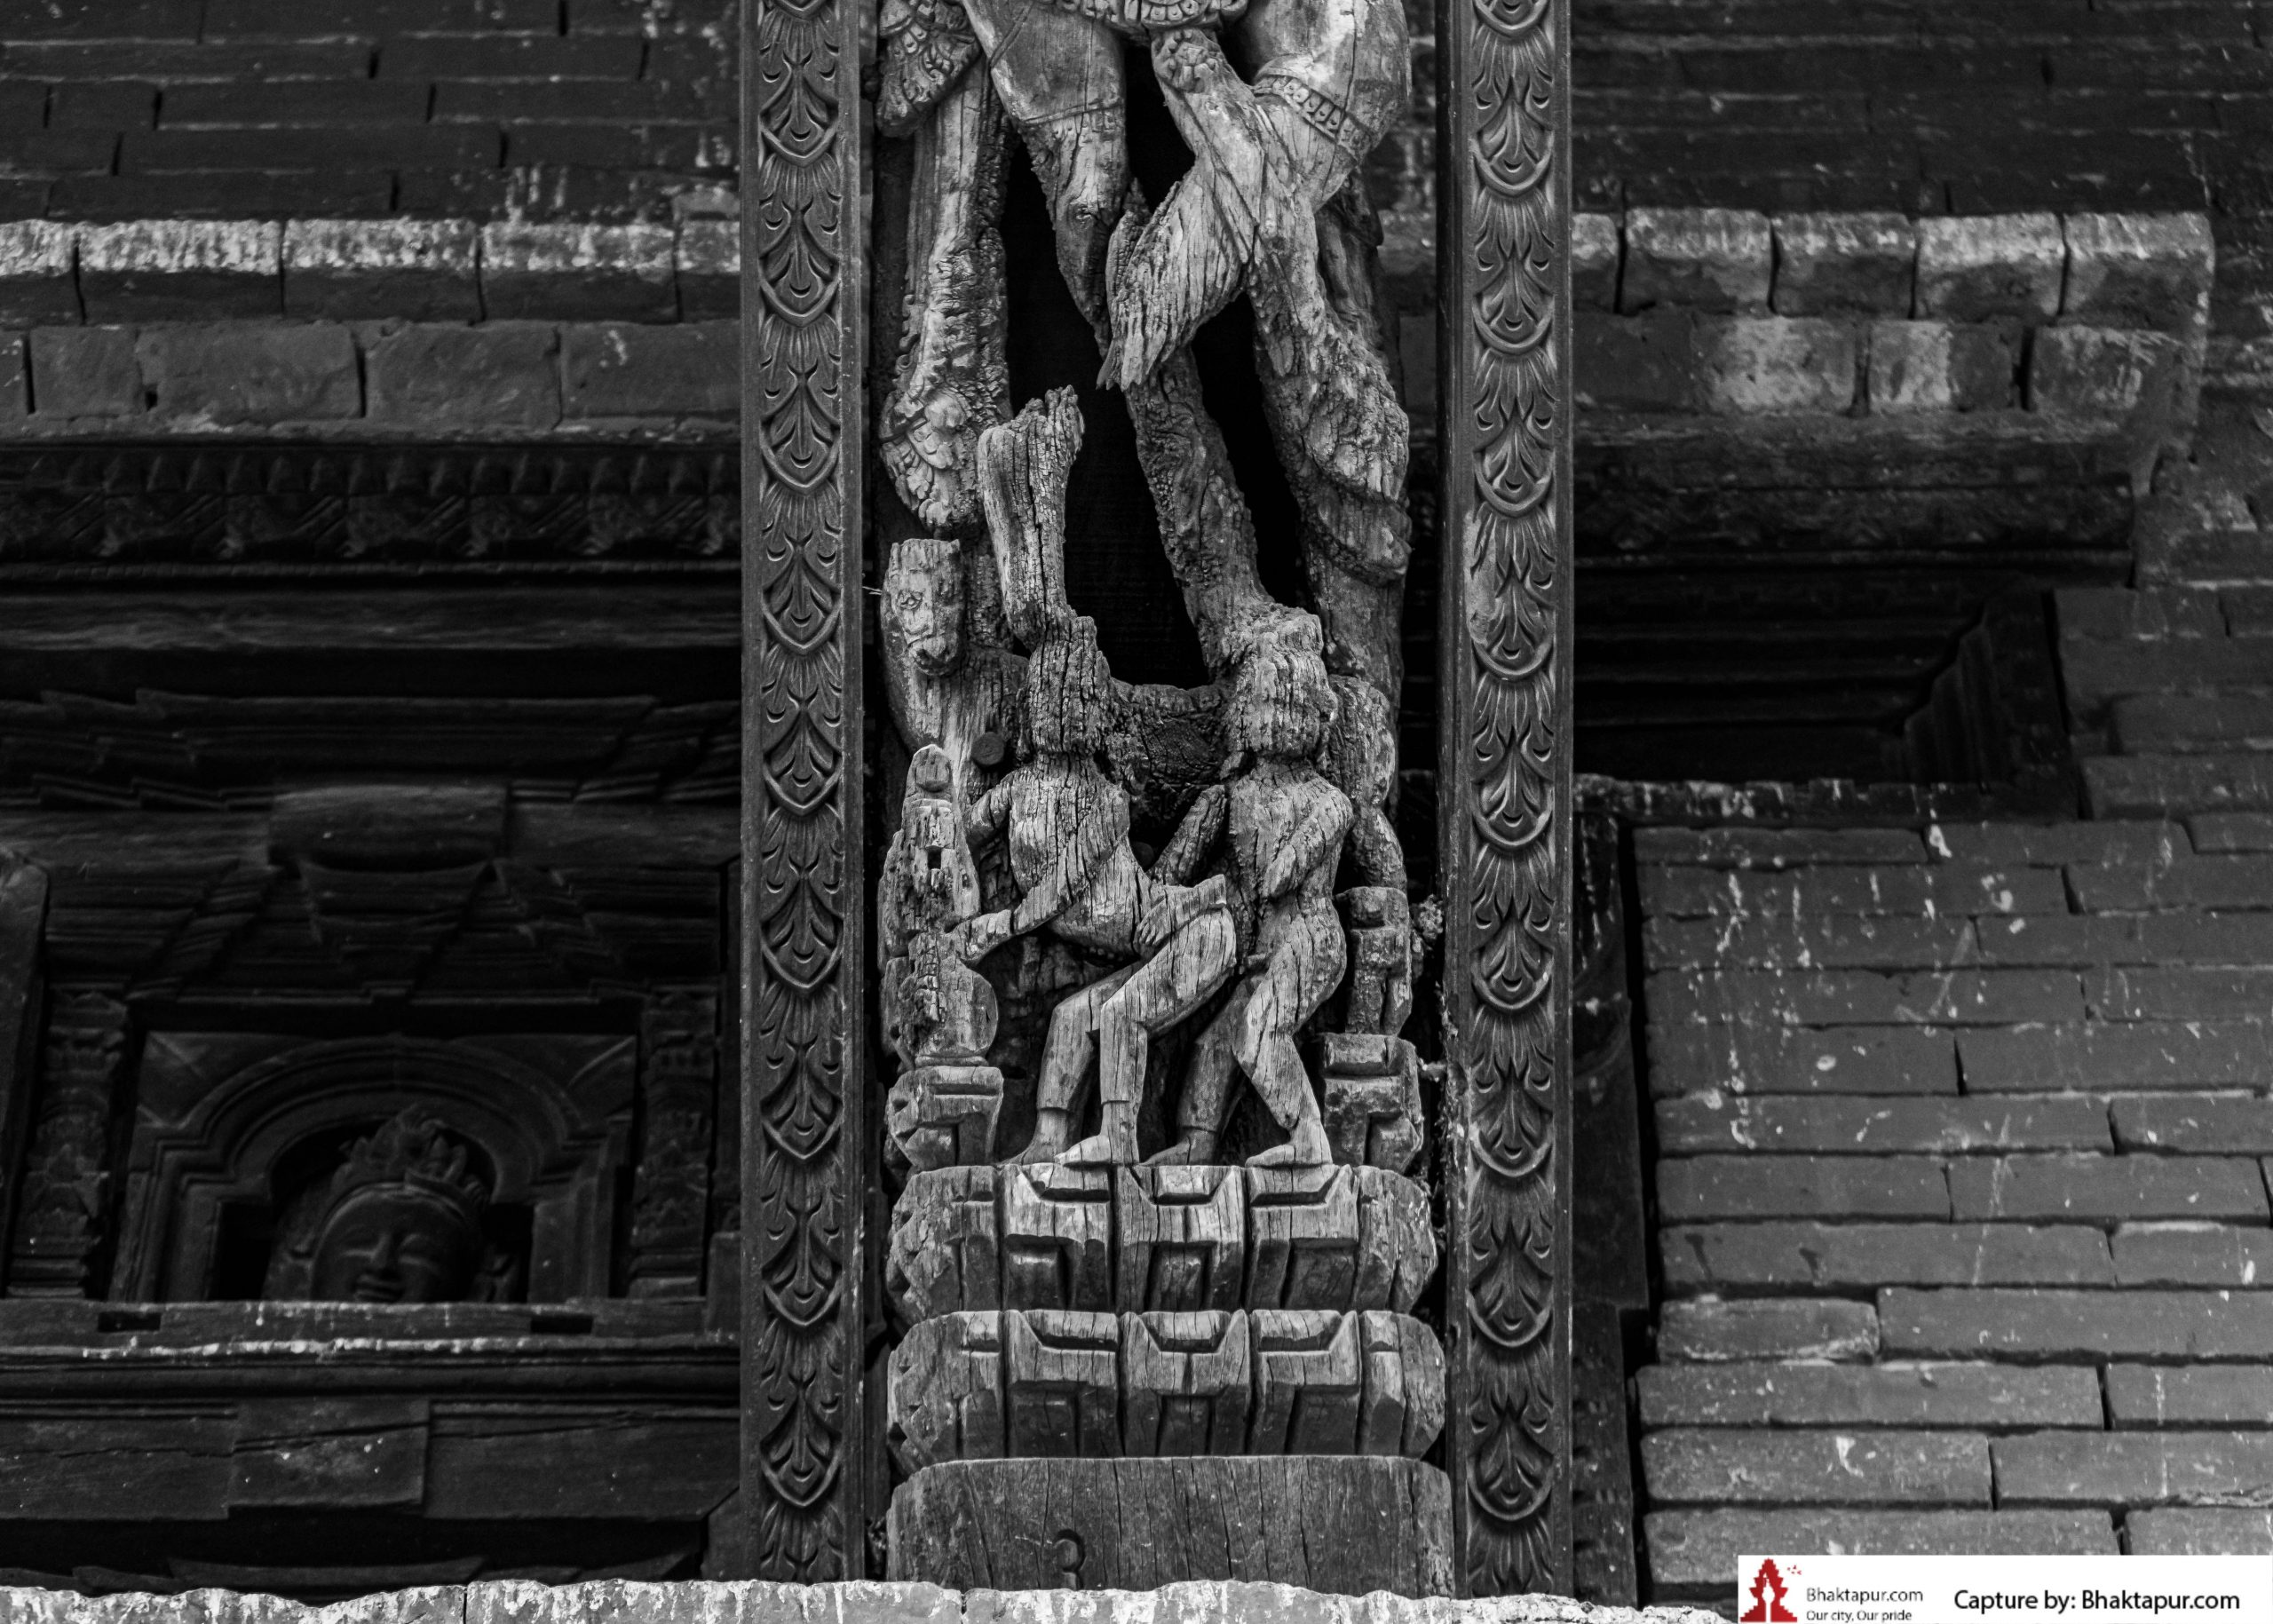 https://www.bhaktapur.com/wp-content/uploads/2021/08/erotic-carving-106-of-137-scaled.jpg